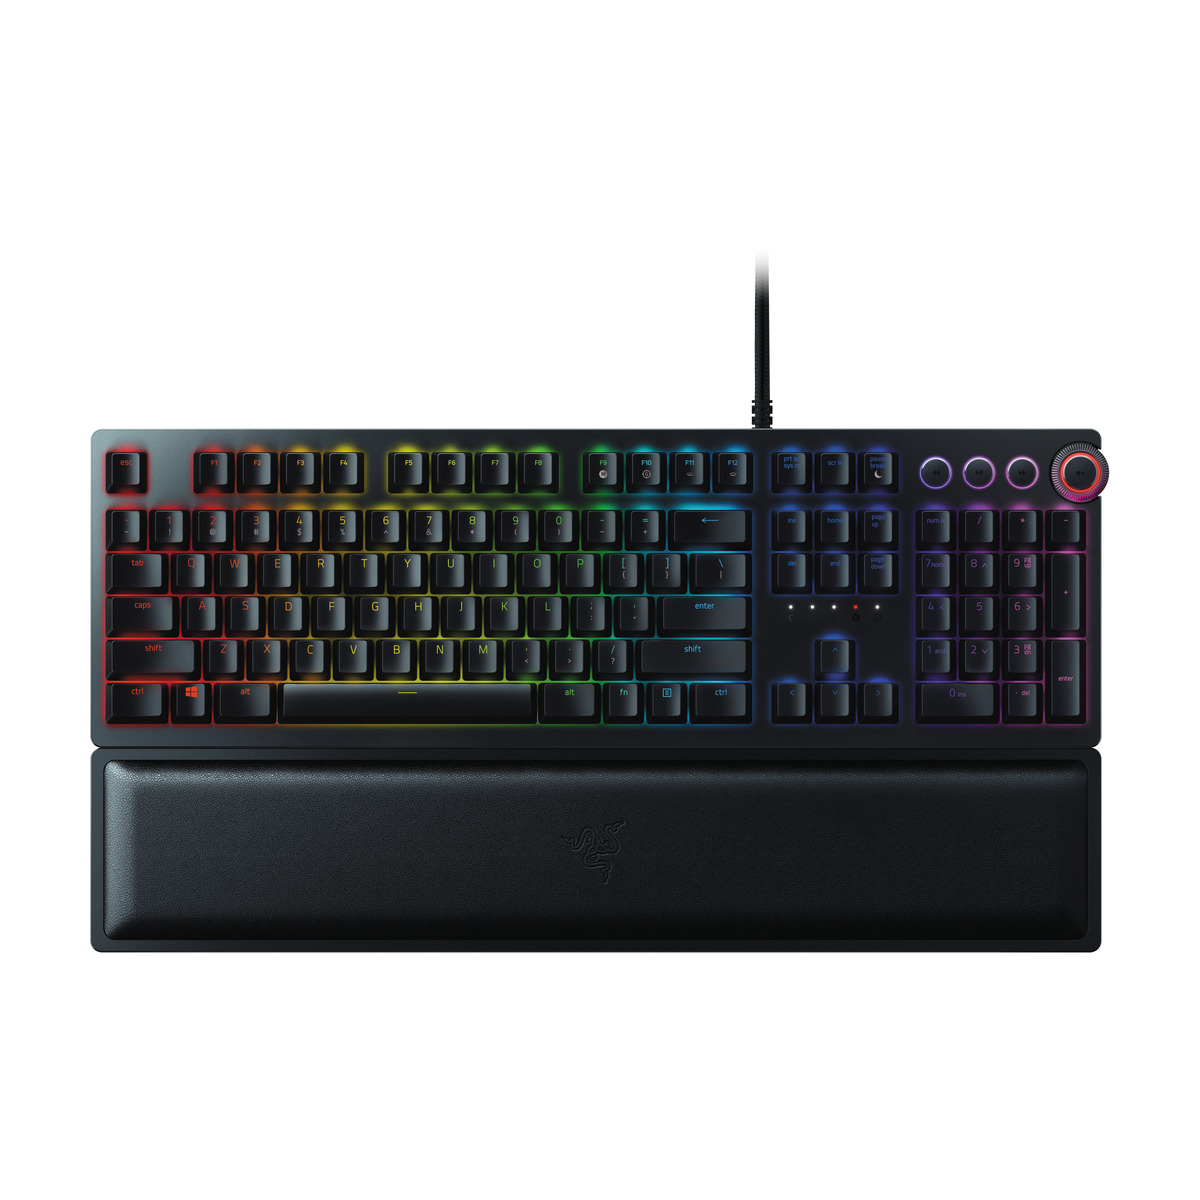 RAZER HUNTSMAN GAMINGTASTATUR Power.no